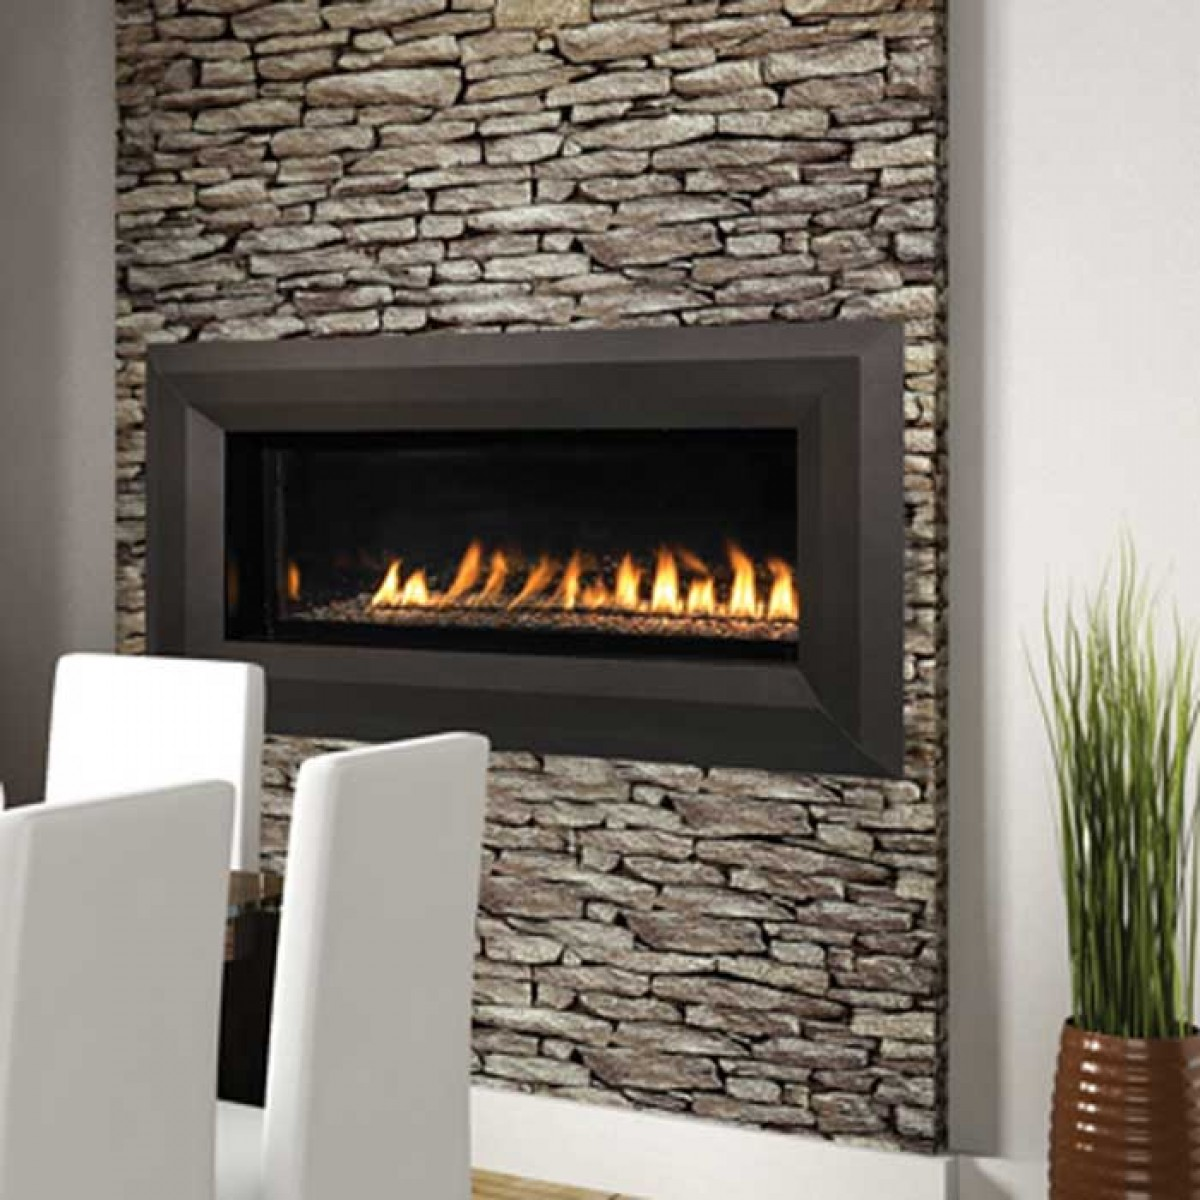 Get a great deal on the IHP Superior VRL4543 Linear Vent Free Gas Fireplace-F1186 at iBuyFireplaces. We stock the full line of IHP Superior Fireplaces at iBuyFireplaces.